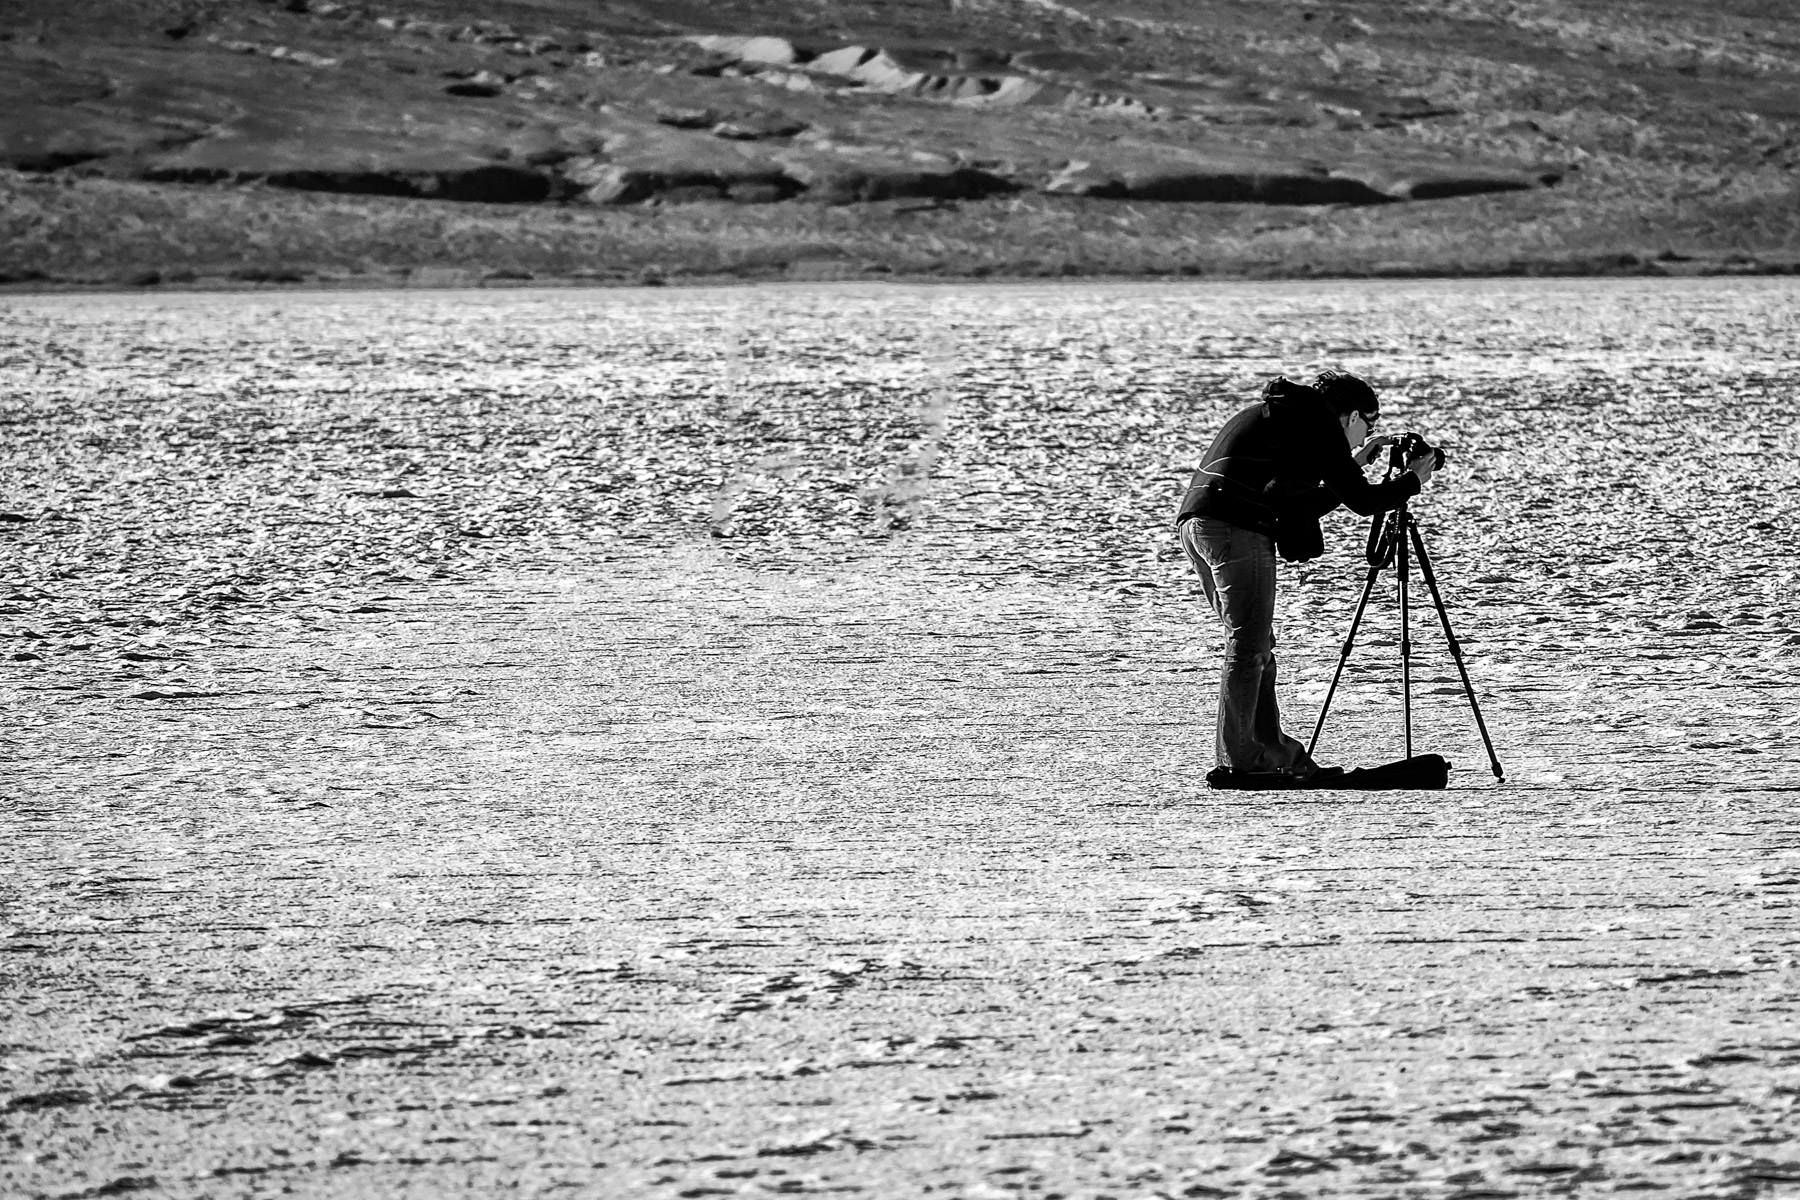 A fellow photographer prepares to take a photograph on the immense salt flats of Death Valley's Badwater Basin—the lowest point of North America at −282 feet (−86.0 m) below sea level.